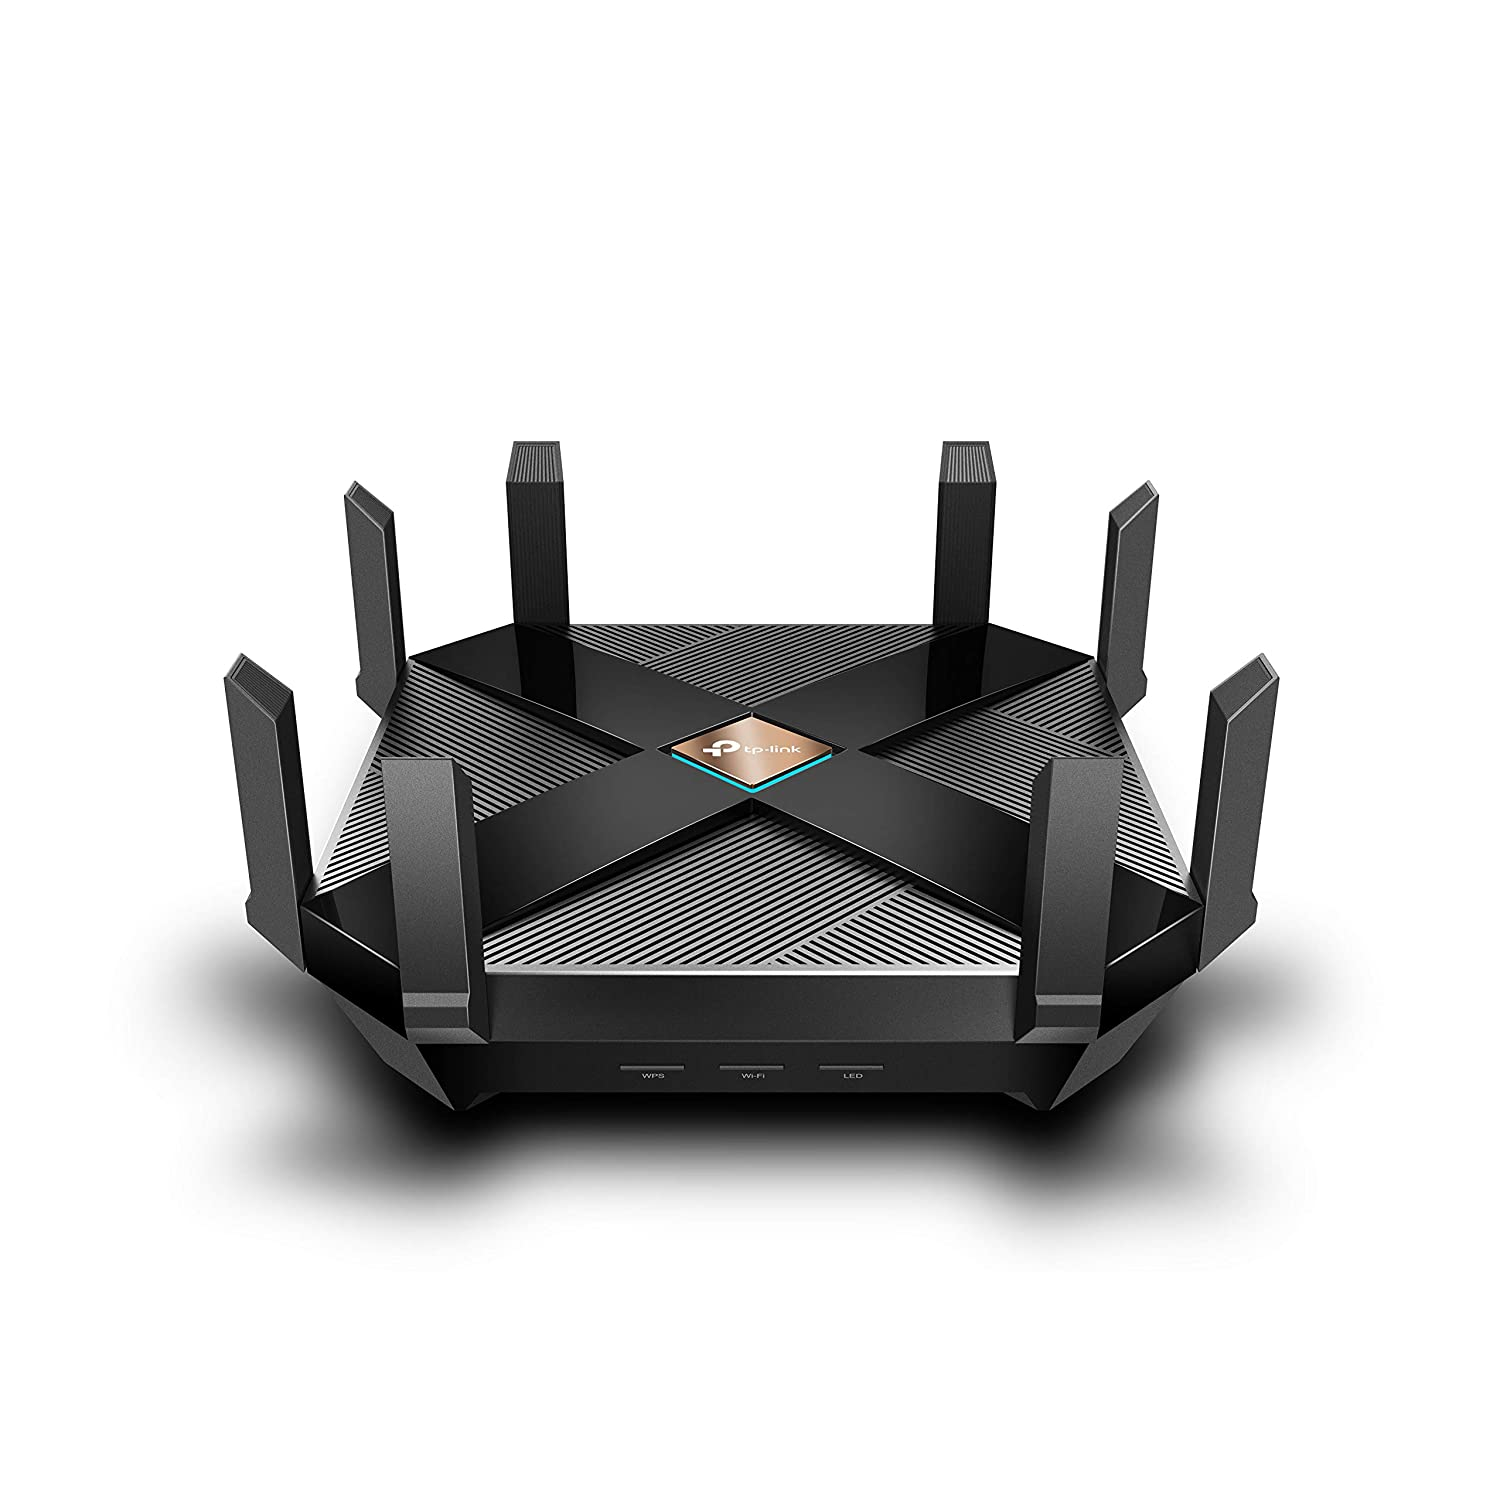 TP-Link WiFi 6 AX6000 8-Stream Smart WiFi Router - Next-Gen 802.11ax, 2.5G WAN Port, 8 Gigabit LAN Ports, MU-MIMO, 1.8GHz Quad-Core CPU, USB 3.0 Ports, Homecare Support(Archer AX6000)